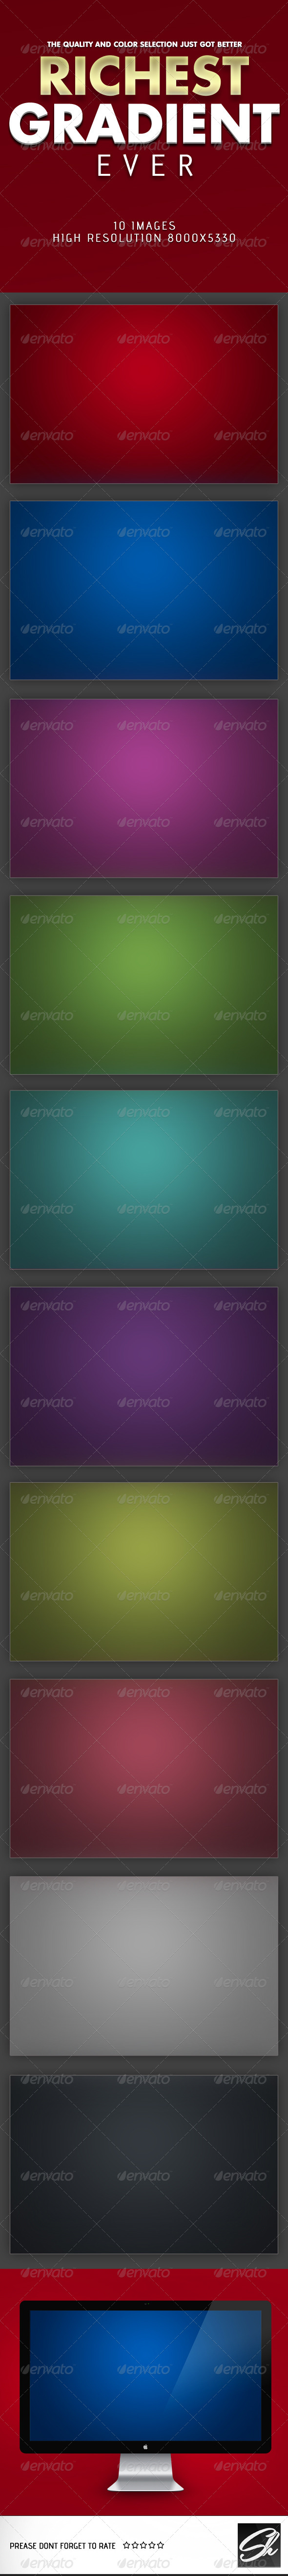 Richest Gradient Ever - Abstract Textures